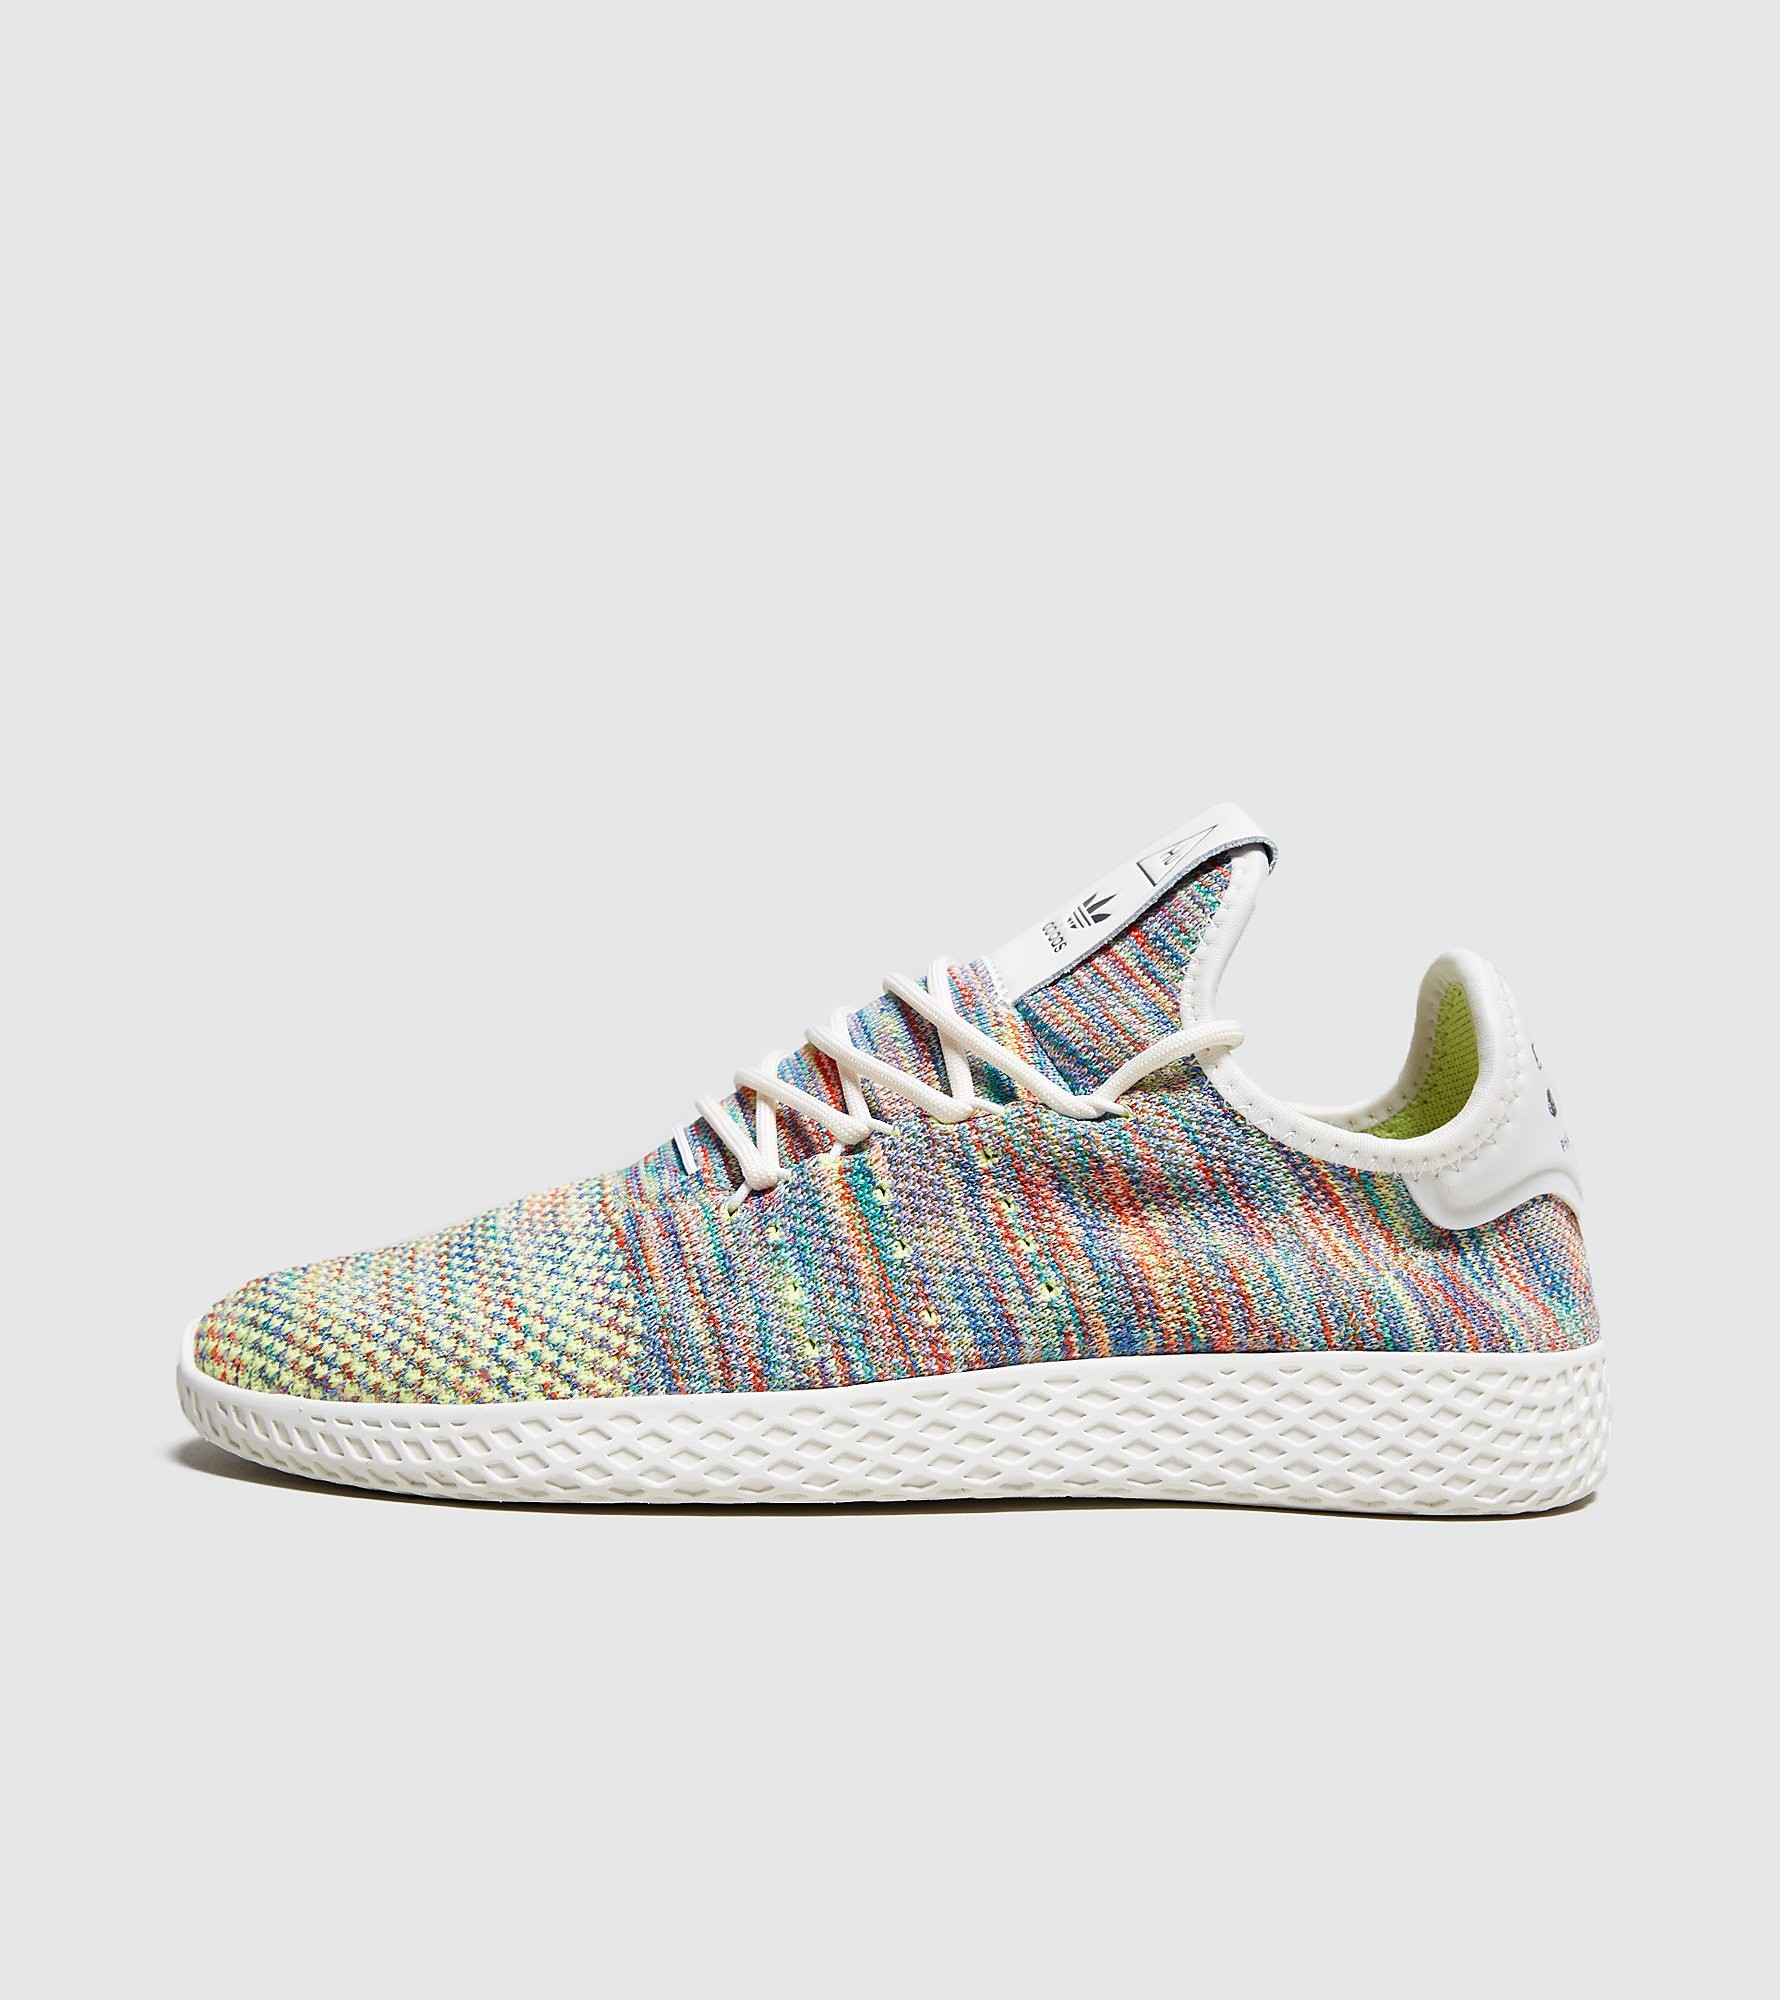 adidas Originals x Pharrell Williams Tennis Hu Primeknit